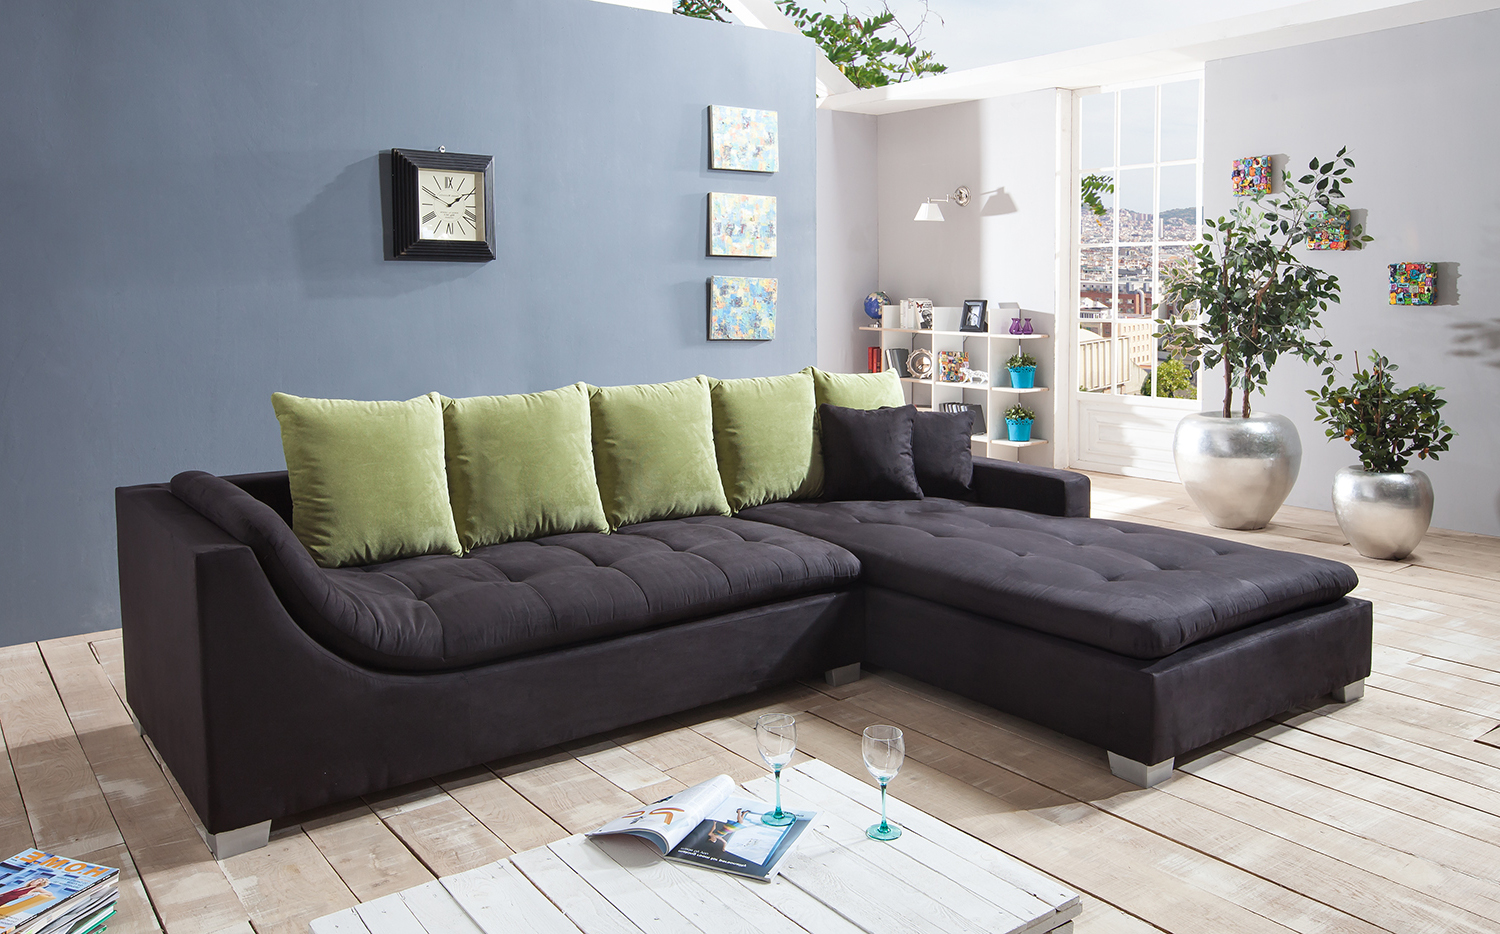 sam ecksofa stoff schwarz sofa villa 305 x 200 cm auf lager 50 rabatt. Black Bedroom Furniture Sets. Home Design Ideas